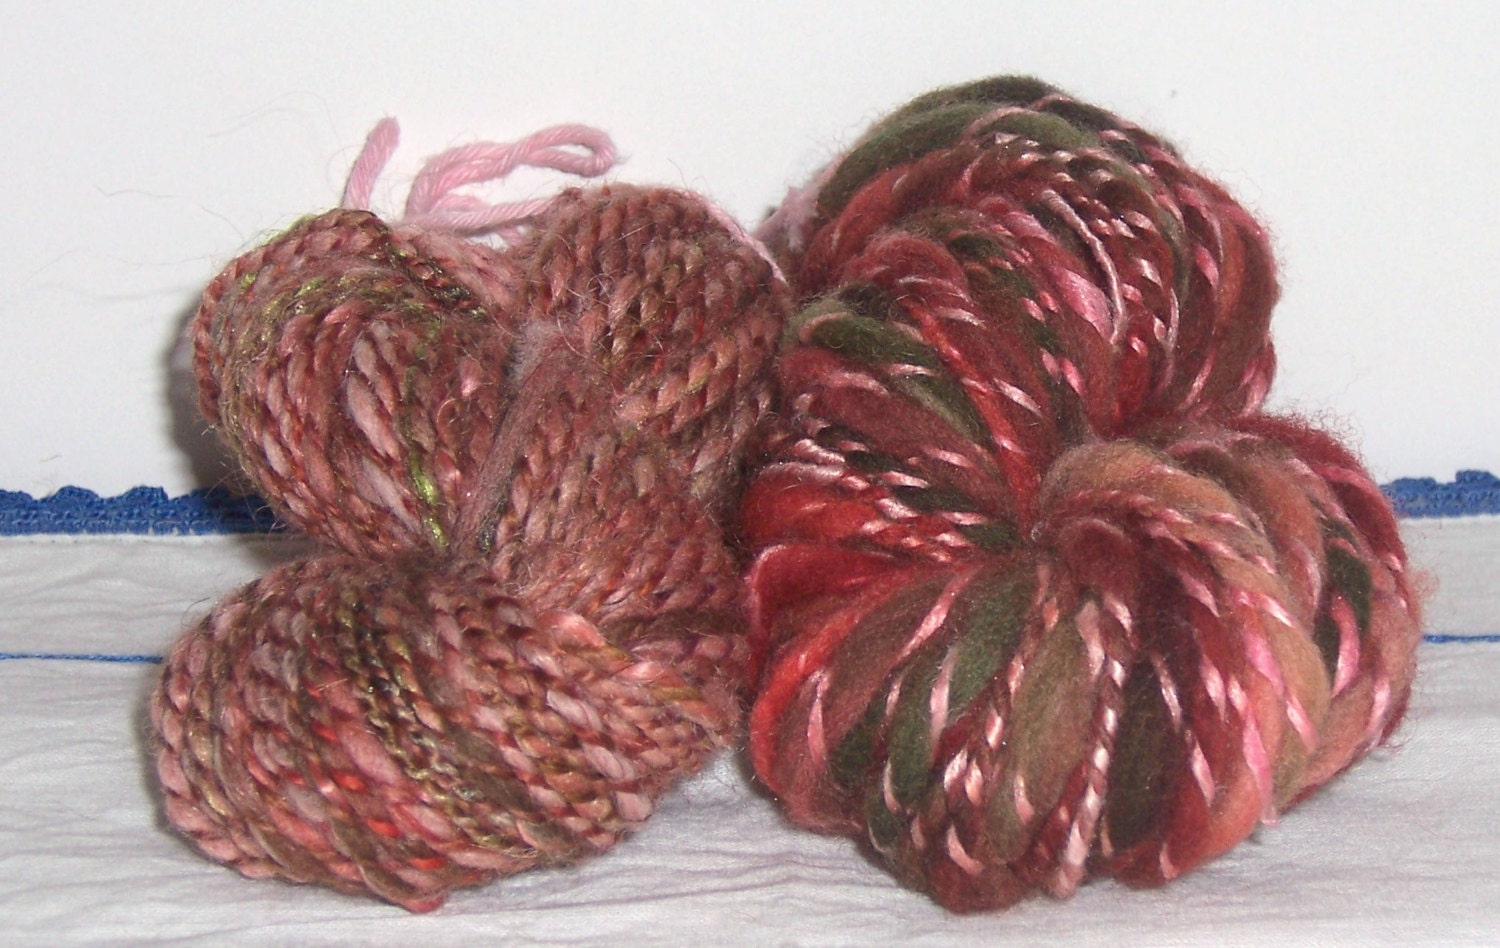 Knitting With Handspun Yarns Patterns : Handspun yarns two for one art yarn thick and thin